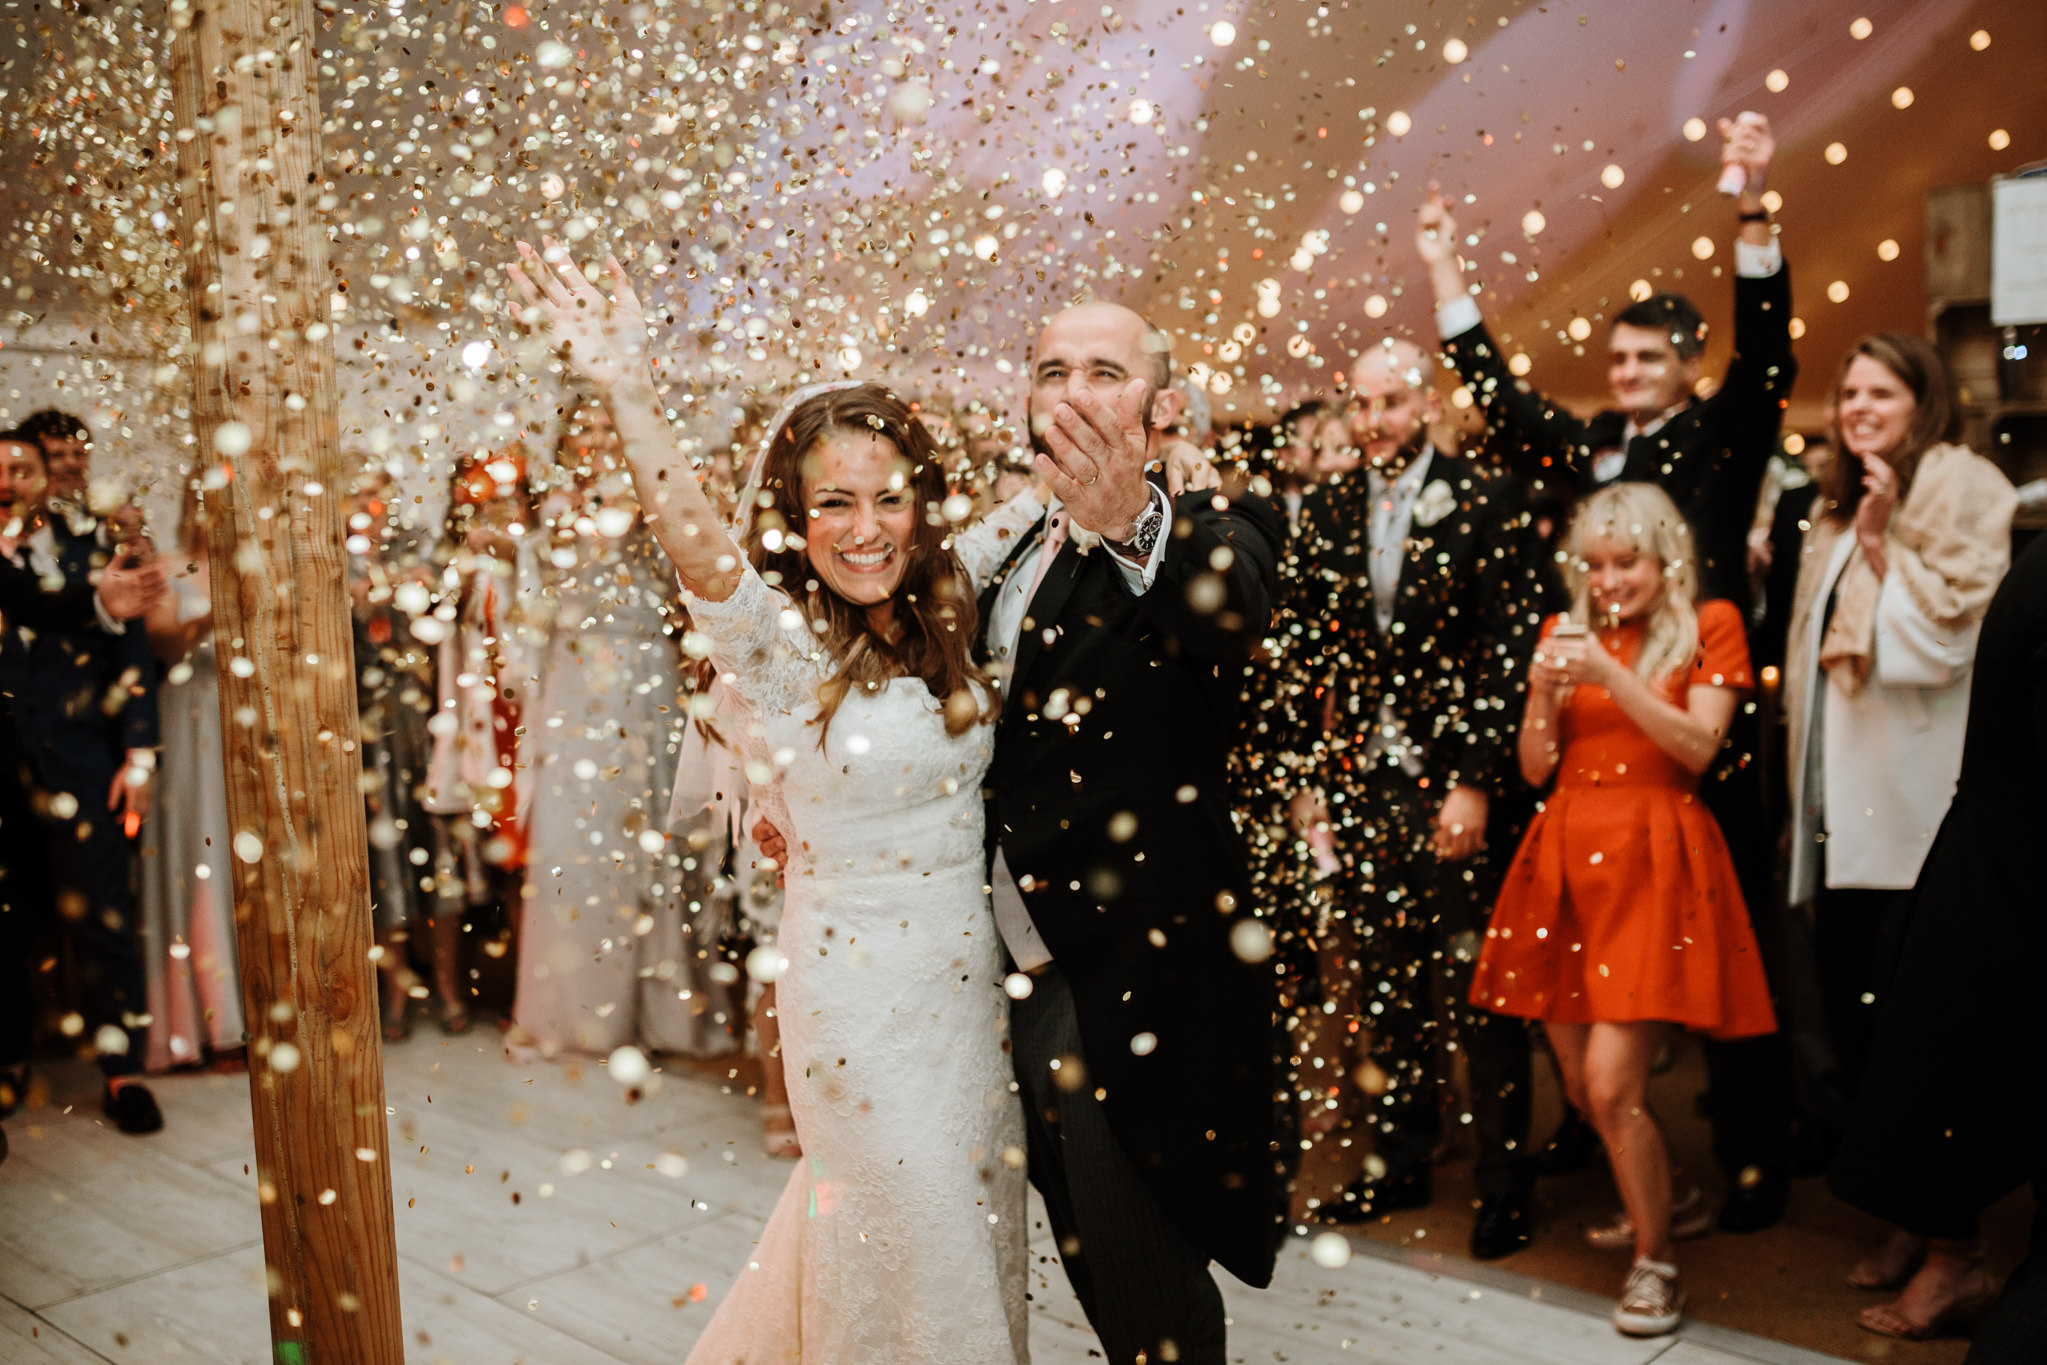 confetti cannons for wedding entertainment ideas on the dance floor